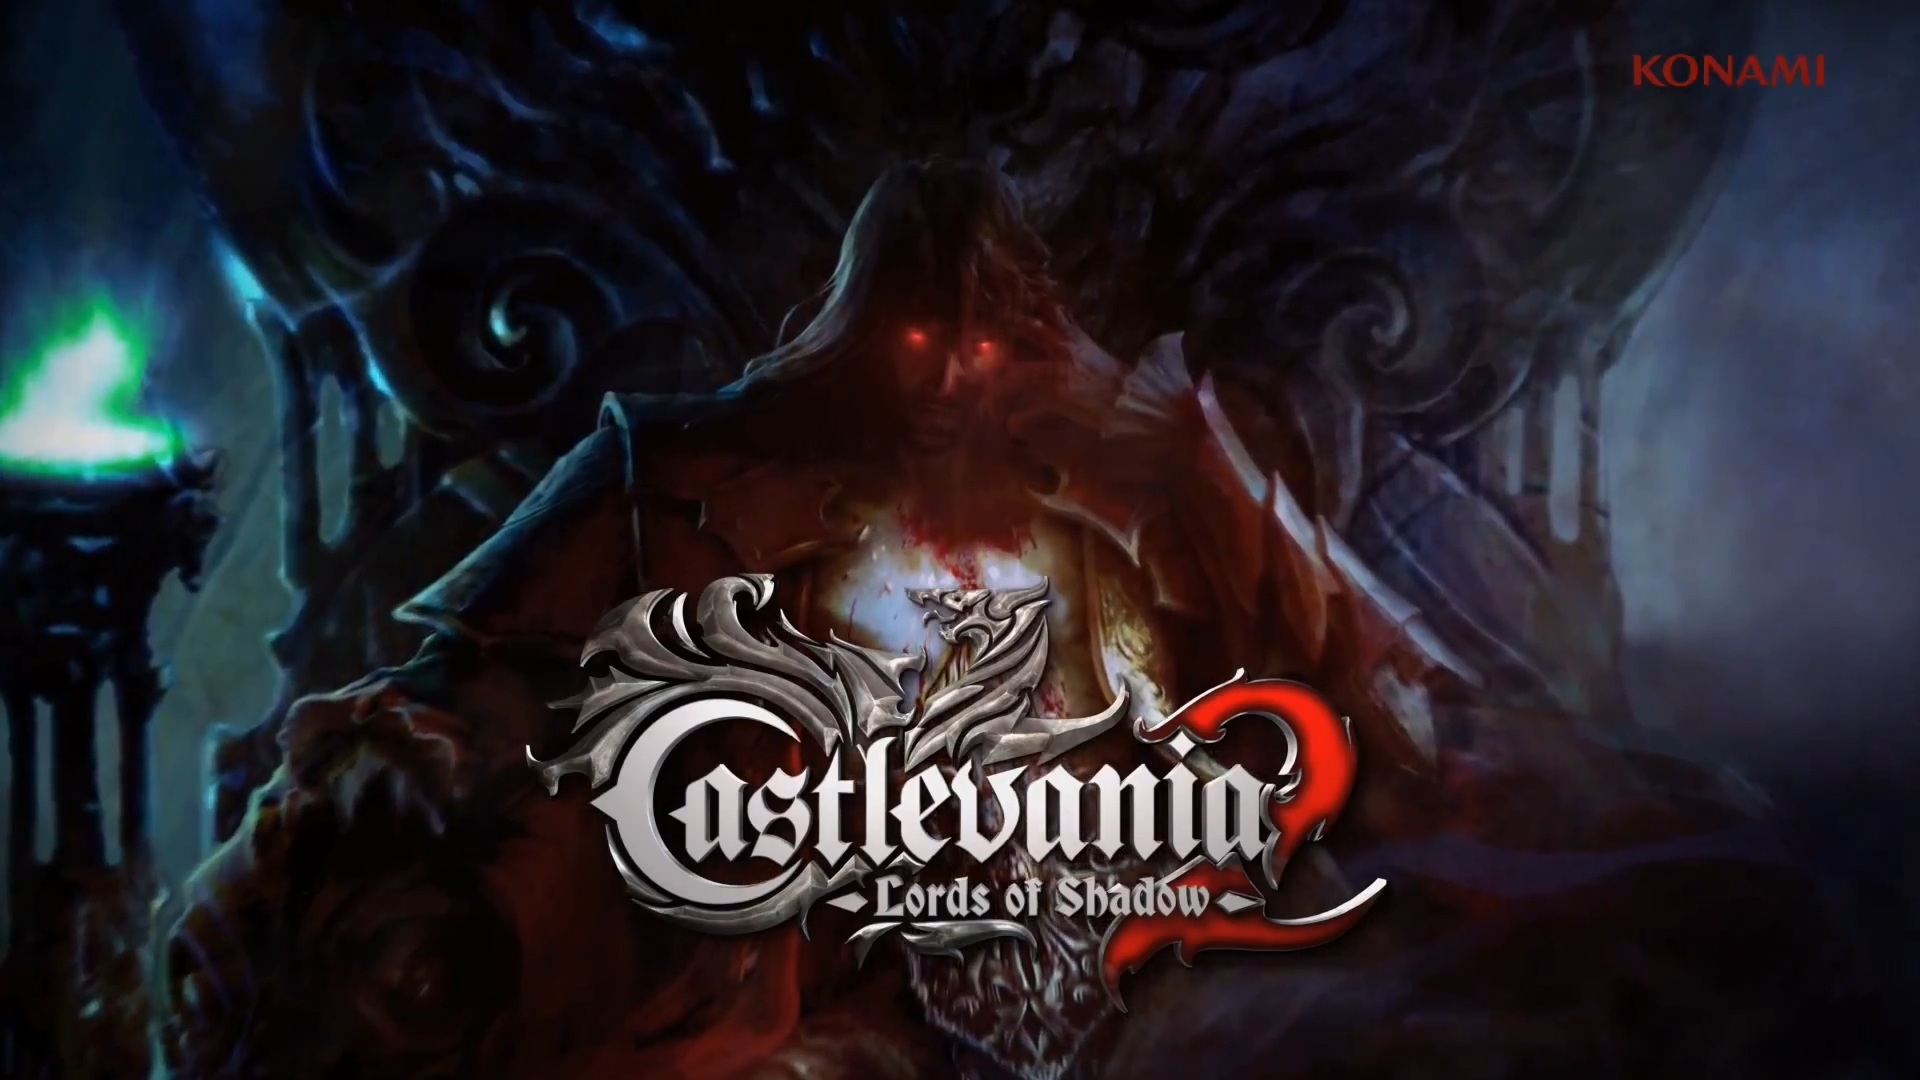 castlevania-lords-of-shadow-2-title